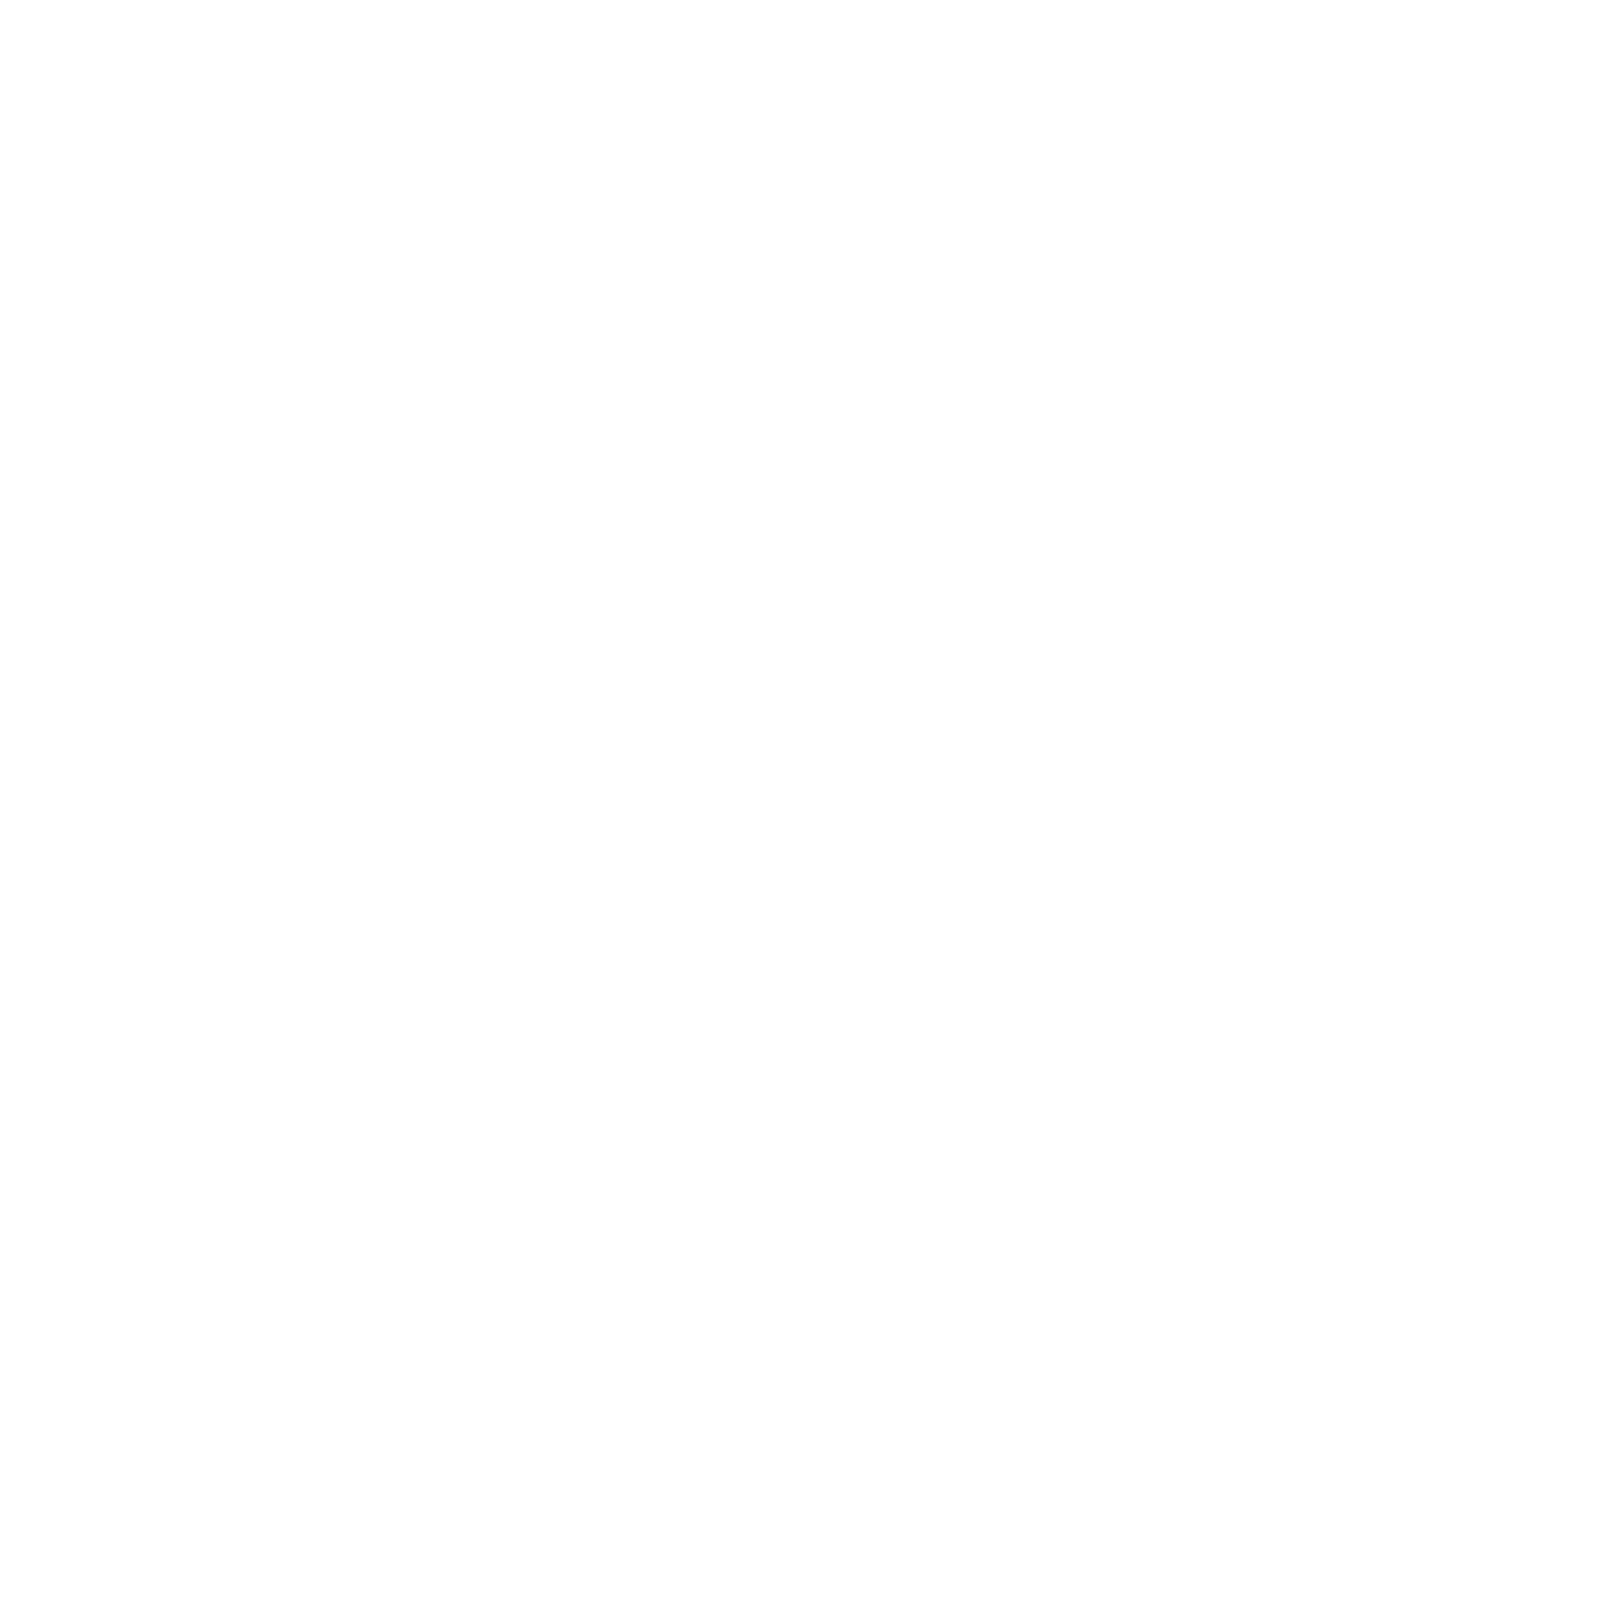 creative-business-leaders-project-logo